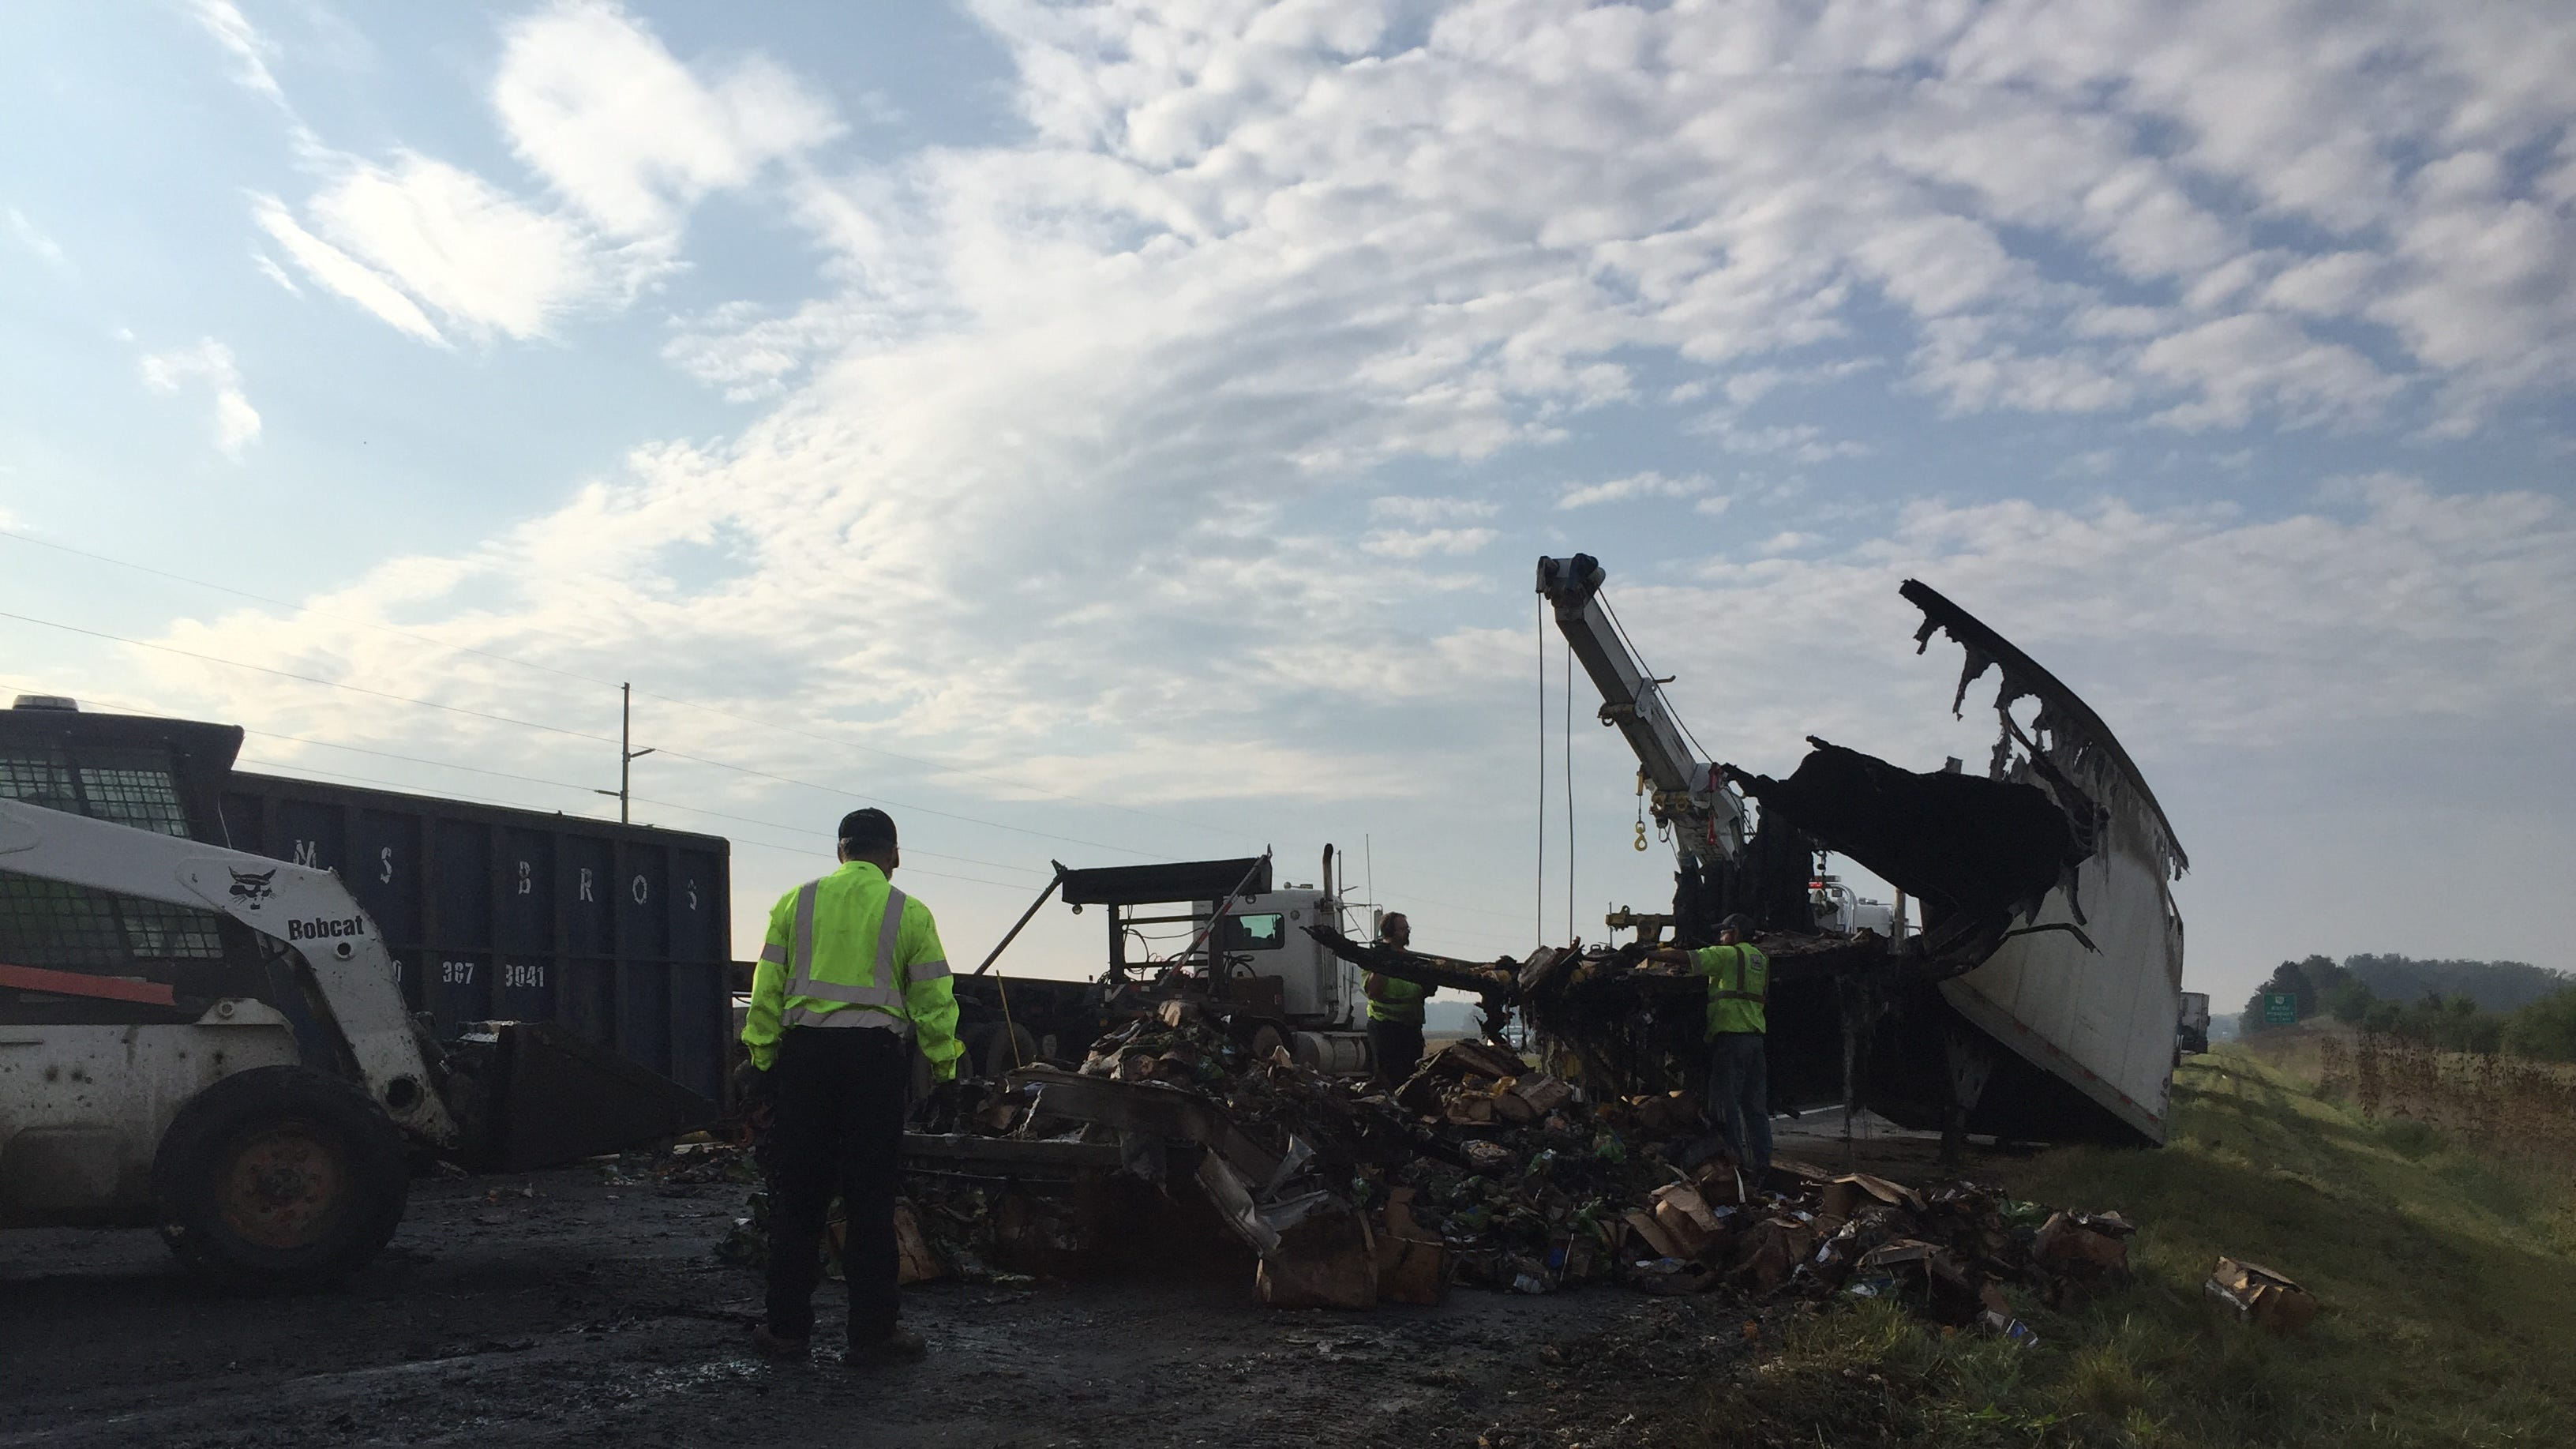 U.S. 23 reopened after Marion woman killed in fiery semi crash